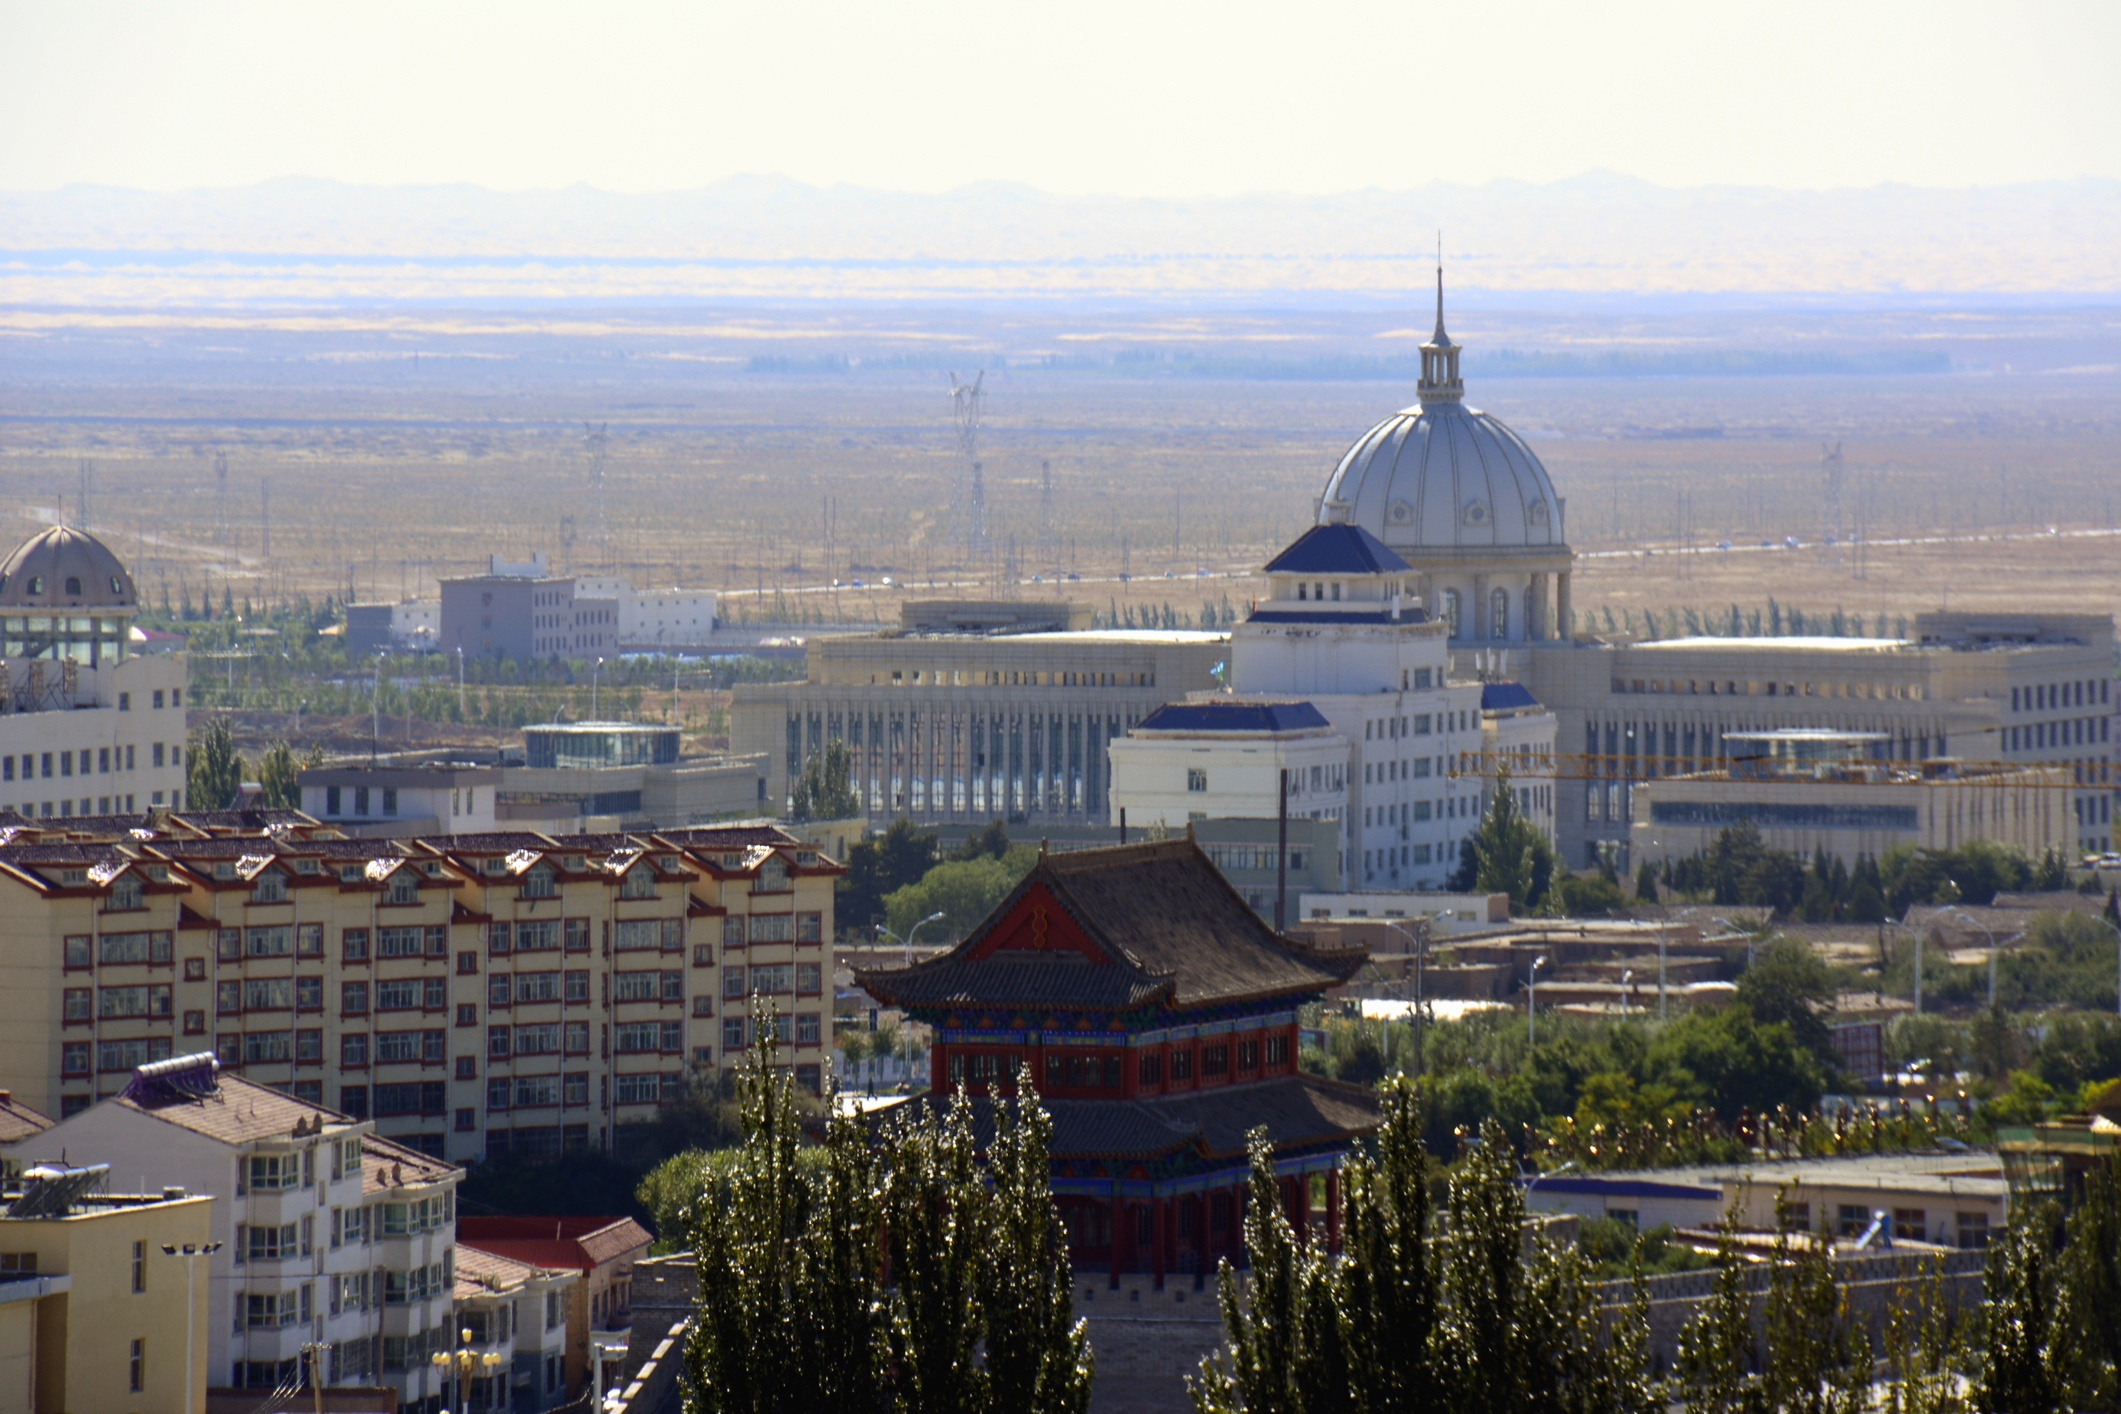 The Church in Mongolia: Daring to Go Where Other NGOs Do Not